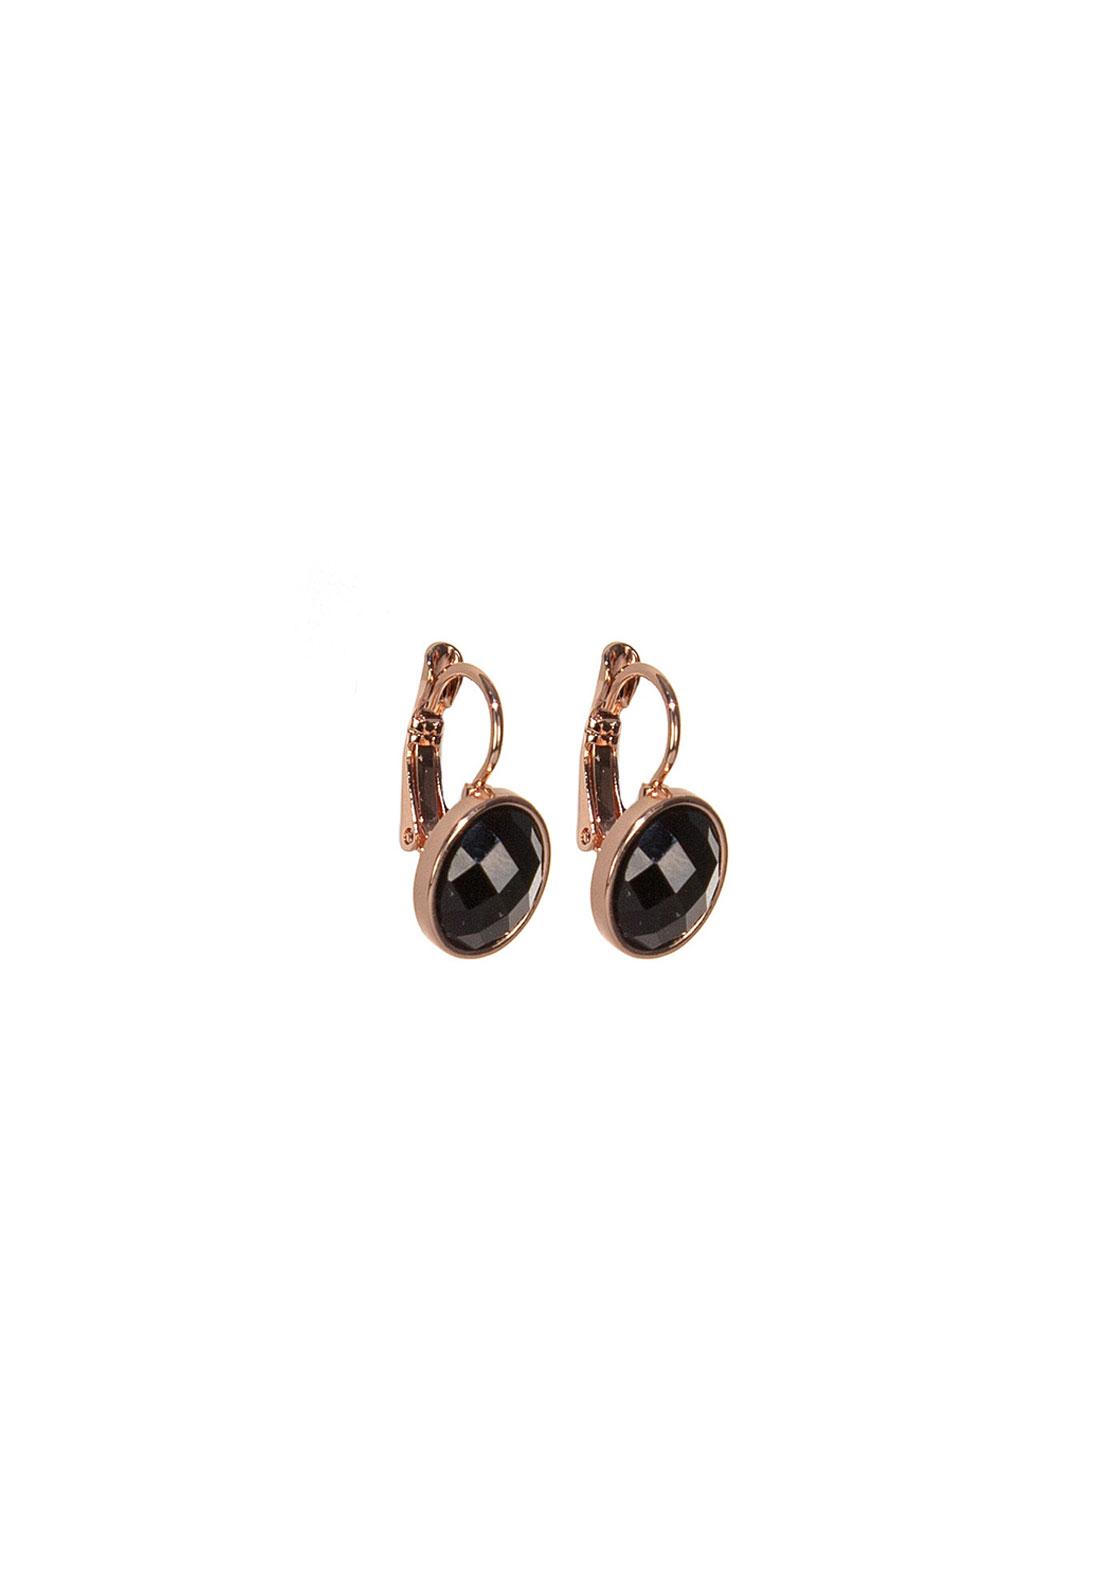 Absolute Jewellery Black Stone Drop Earrings